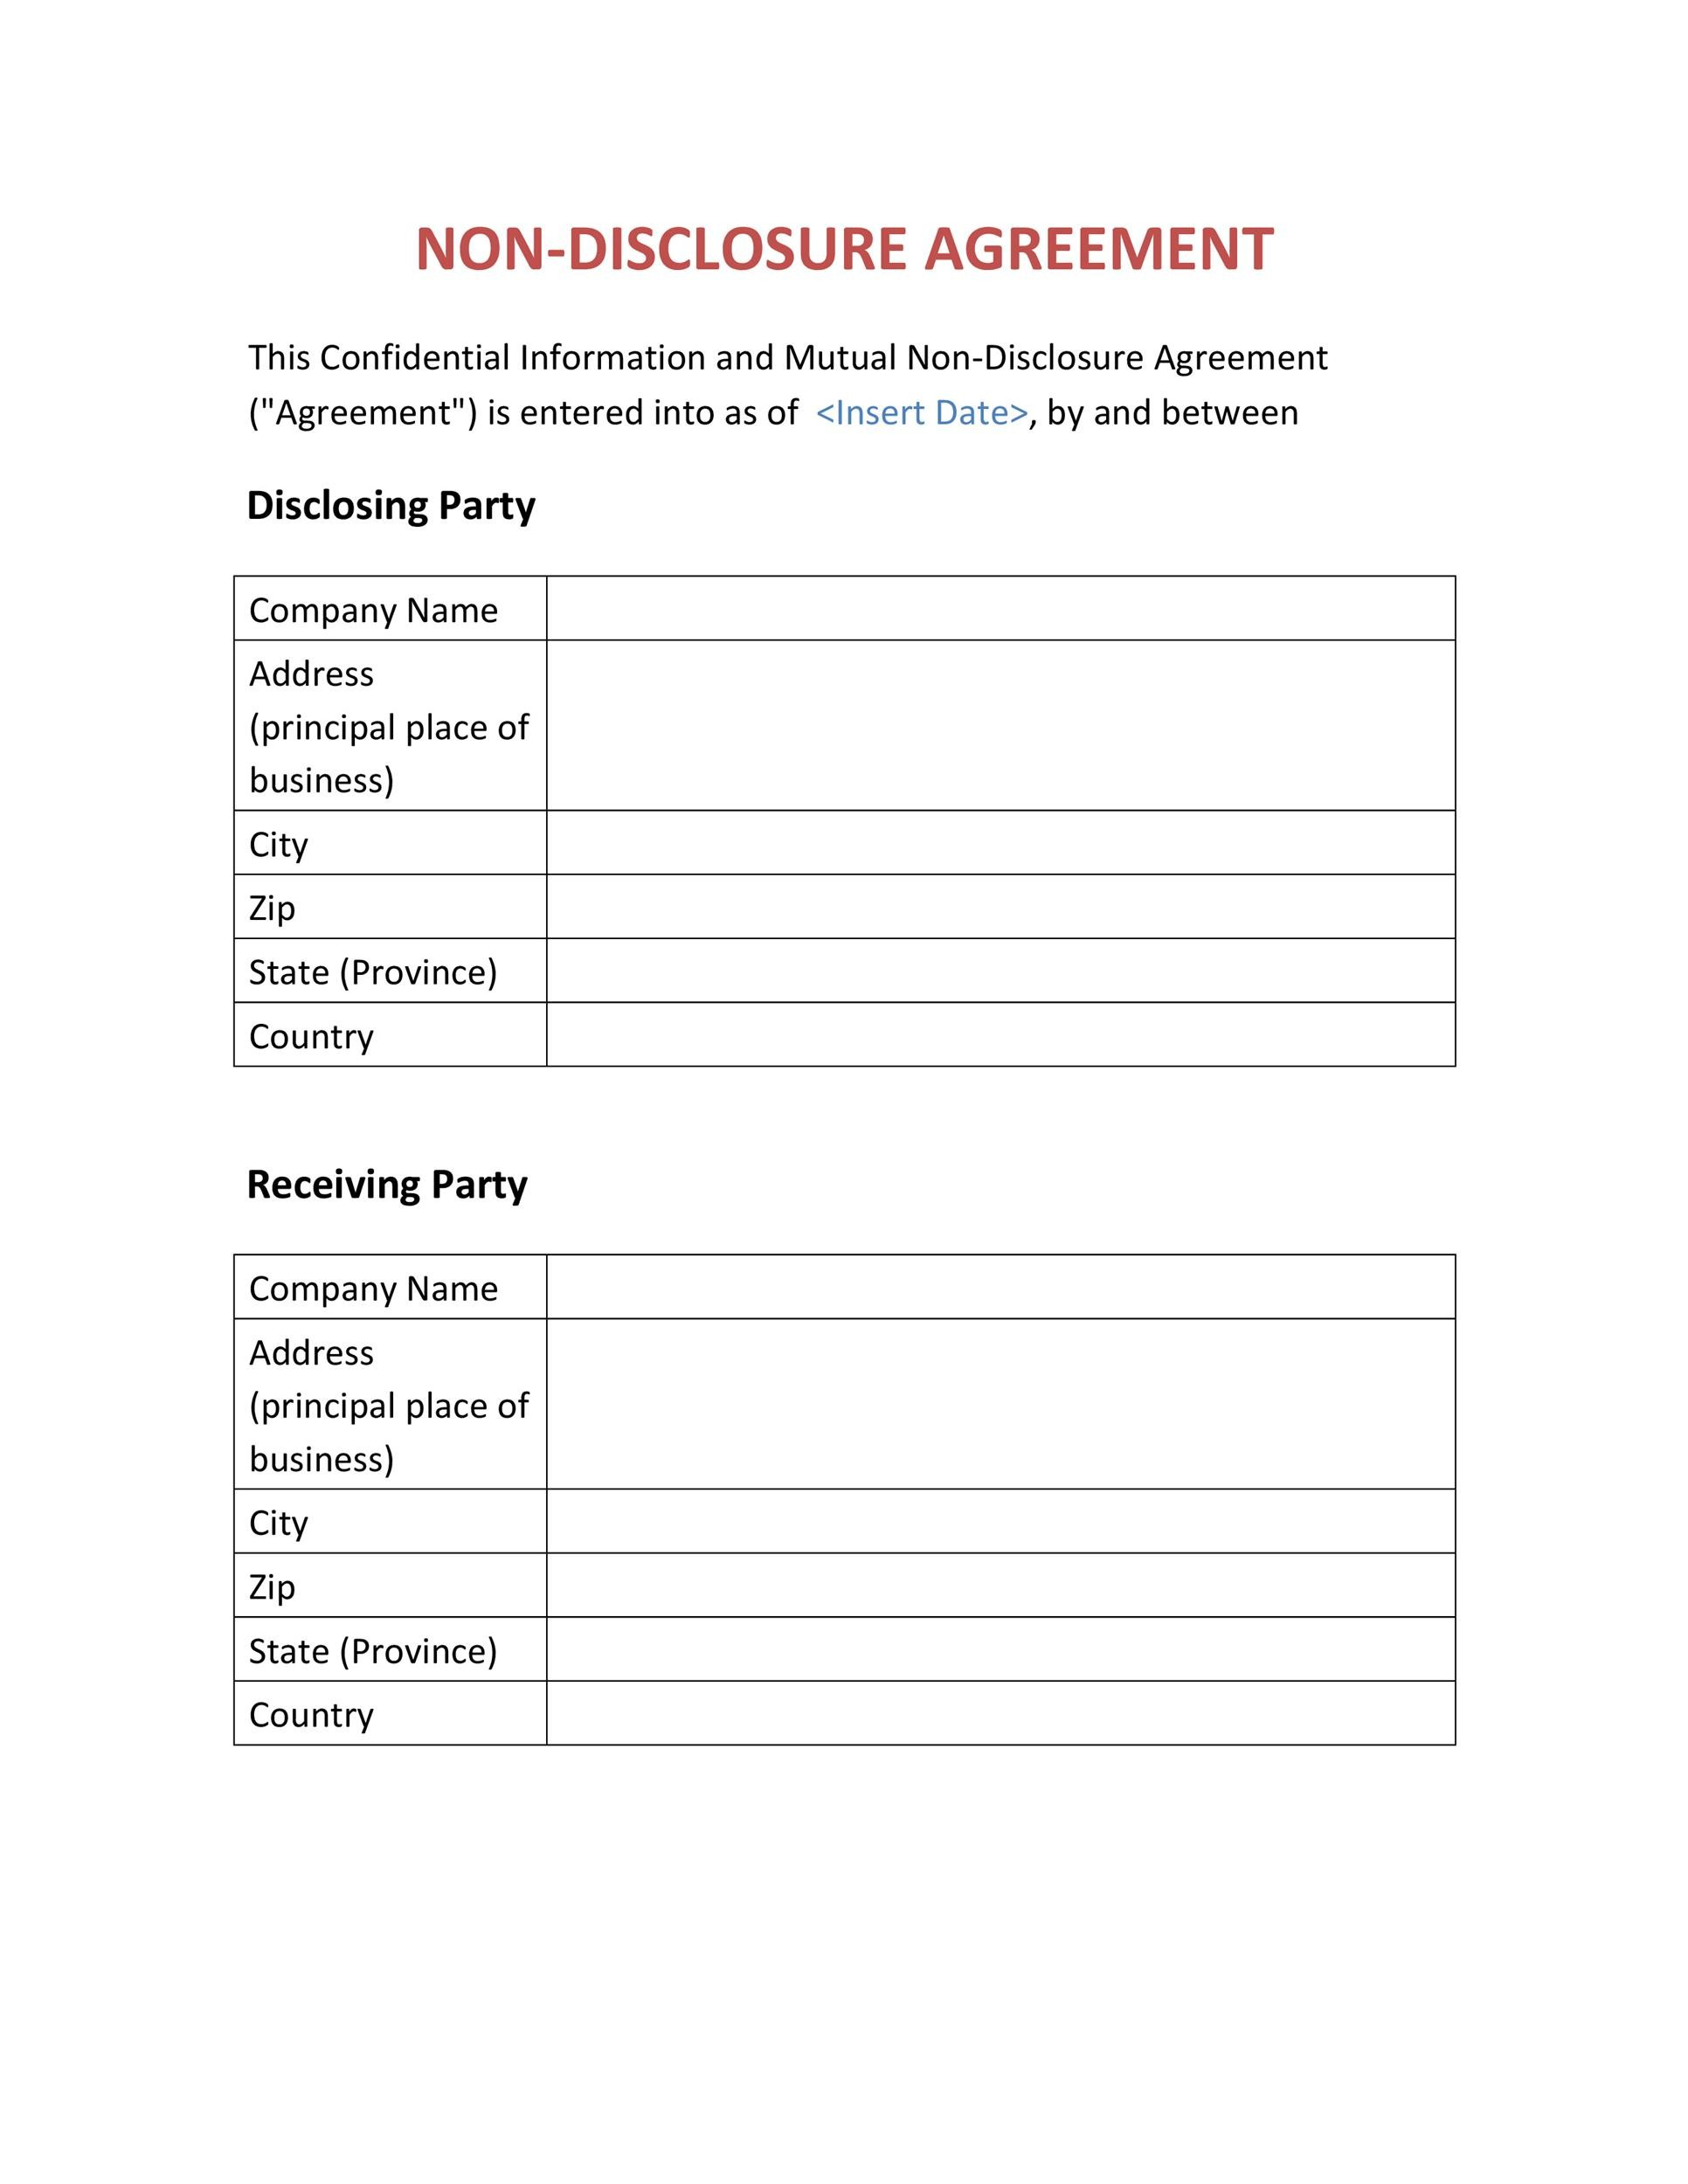 40 Non Disclosure Agreement Templates, Samples & Forms - Template Lab